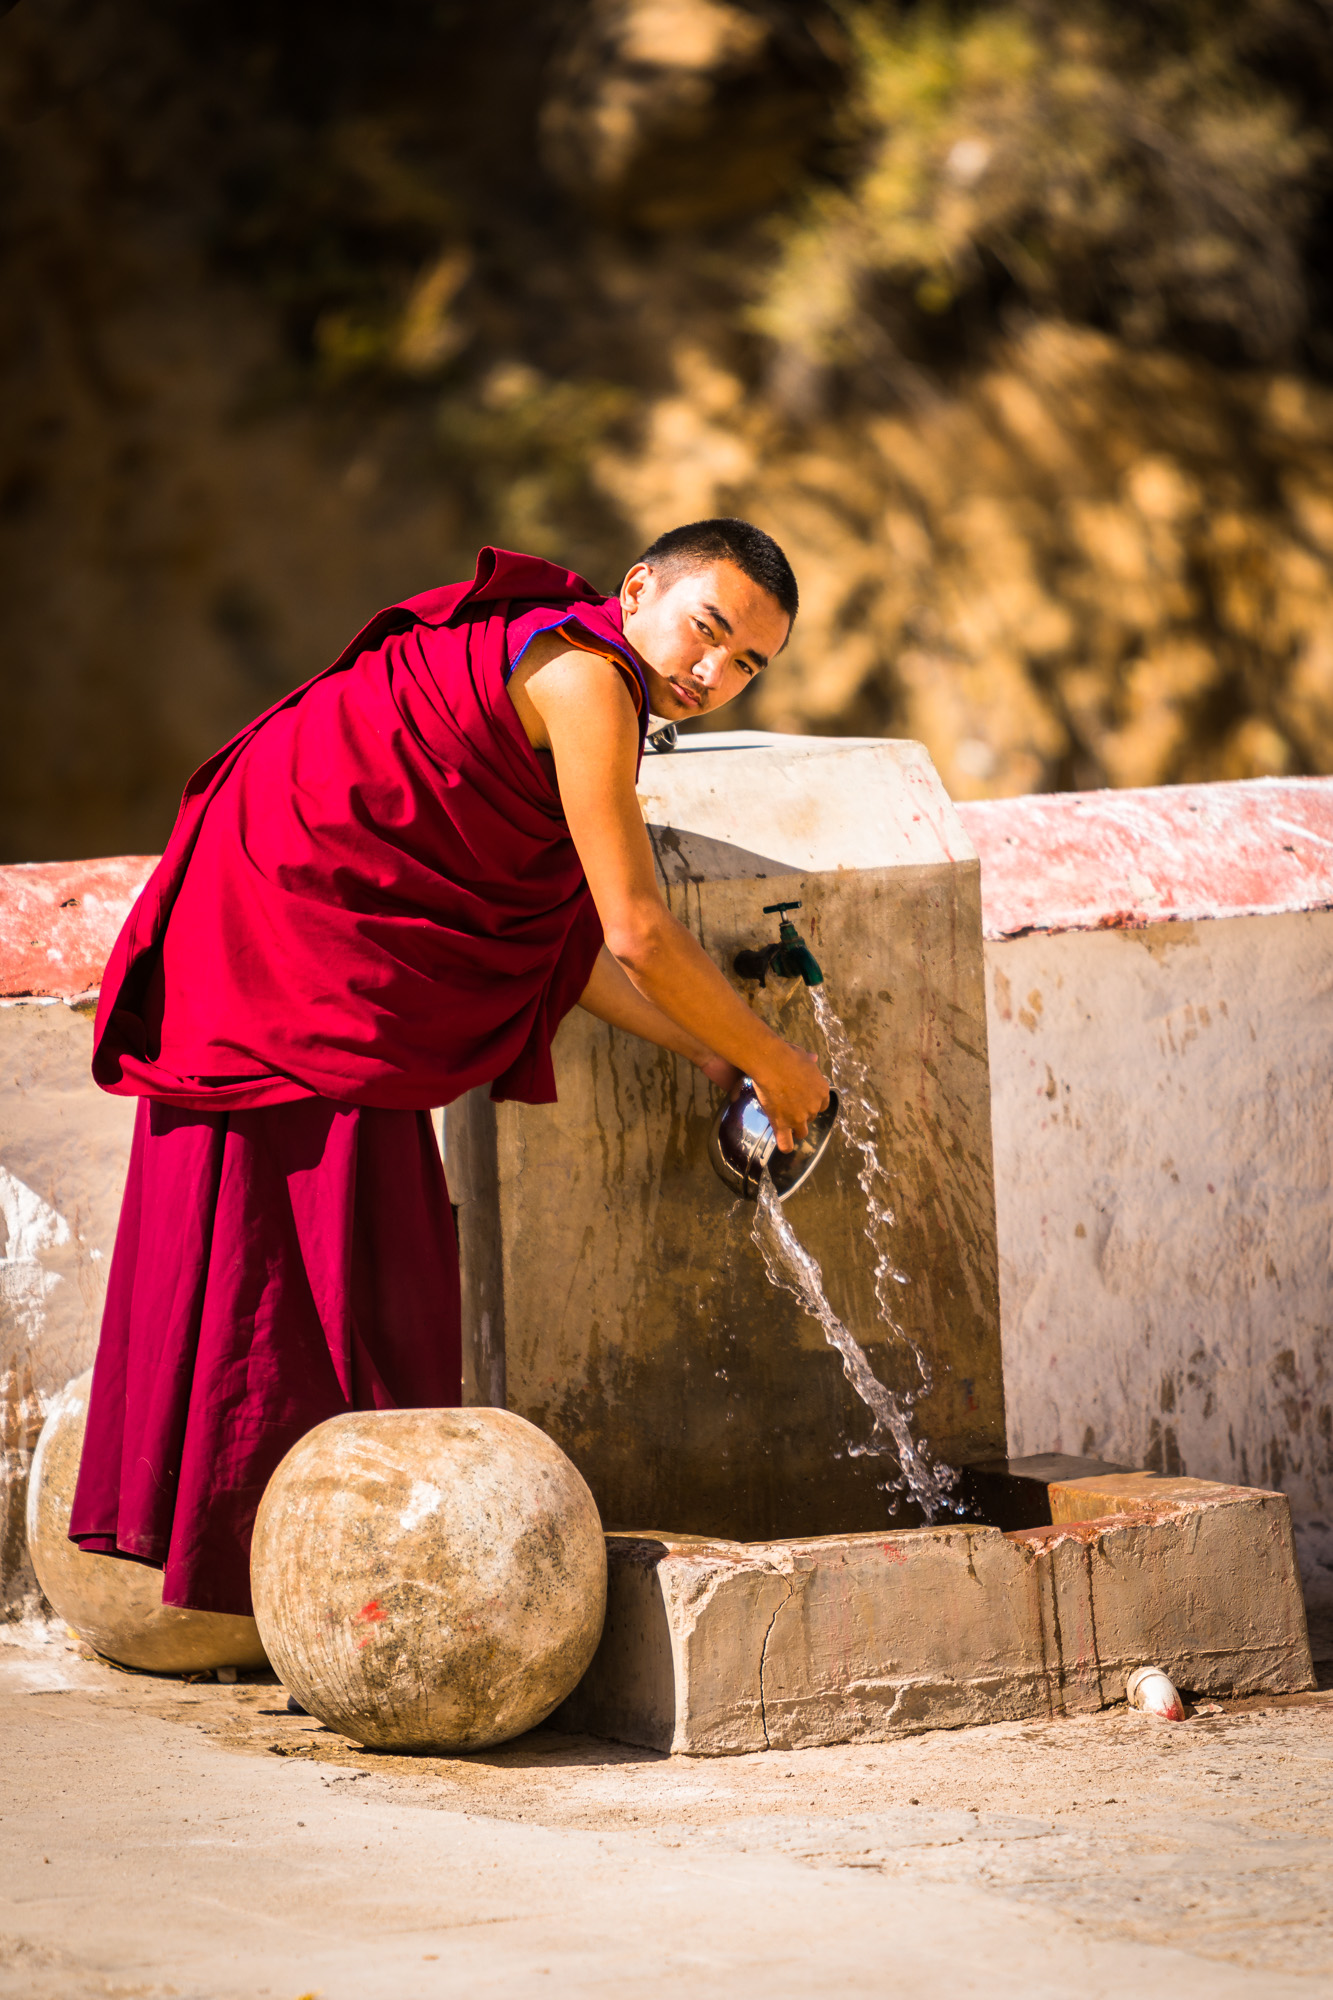 a monk washes his pans, jokhang monastery, lhasa, tibet